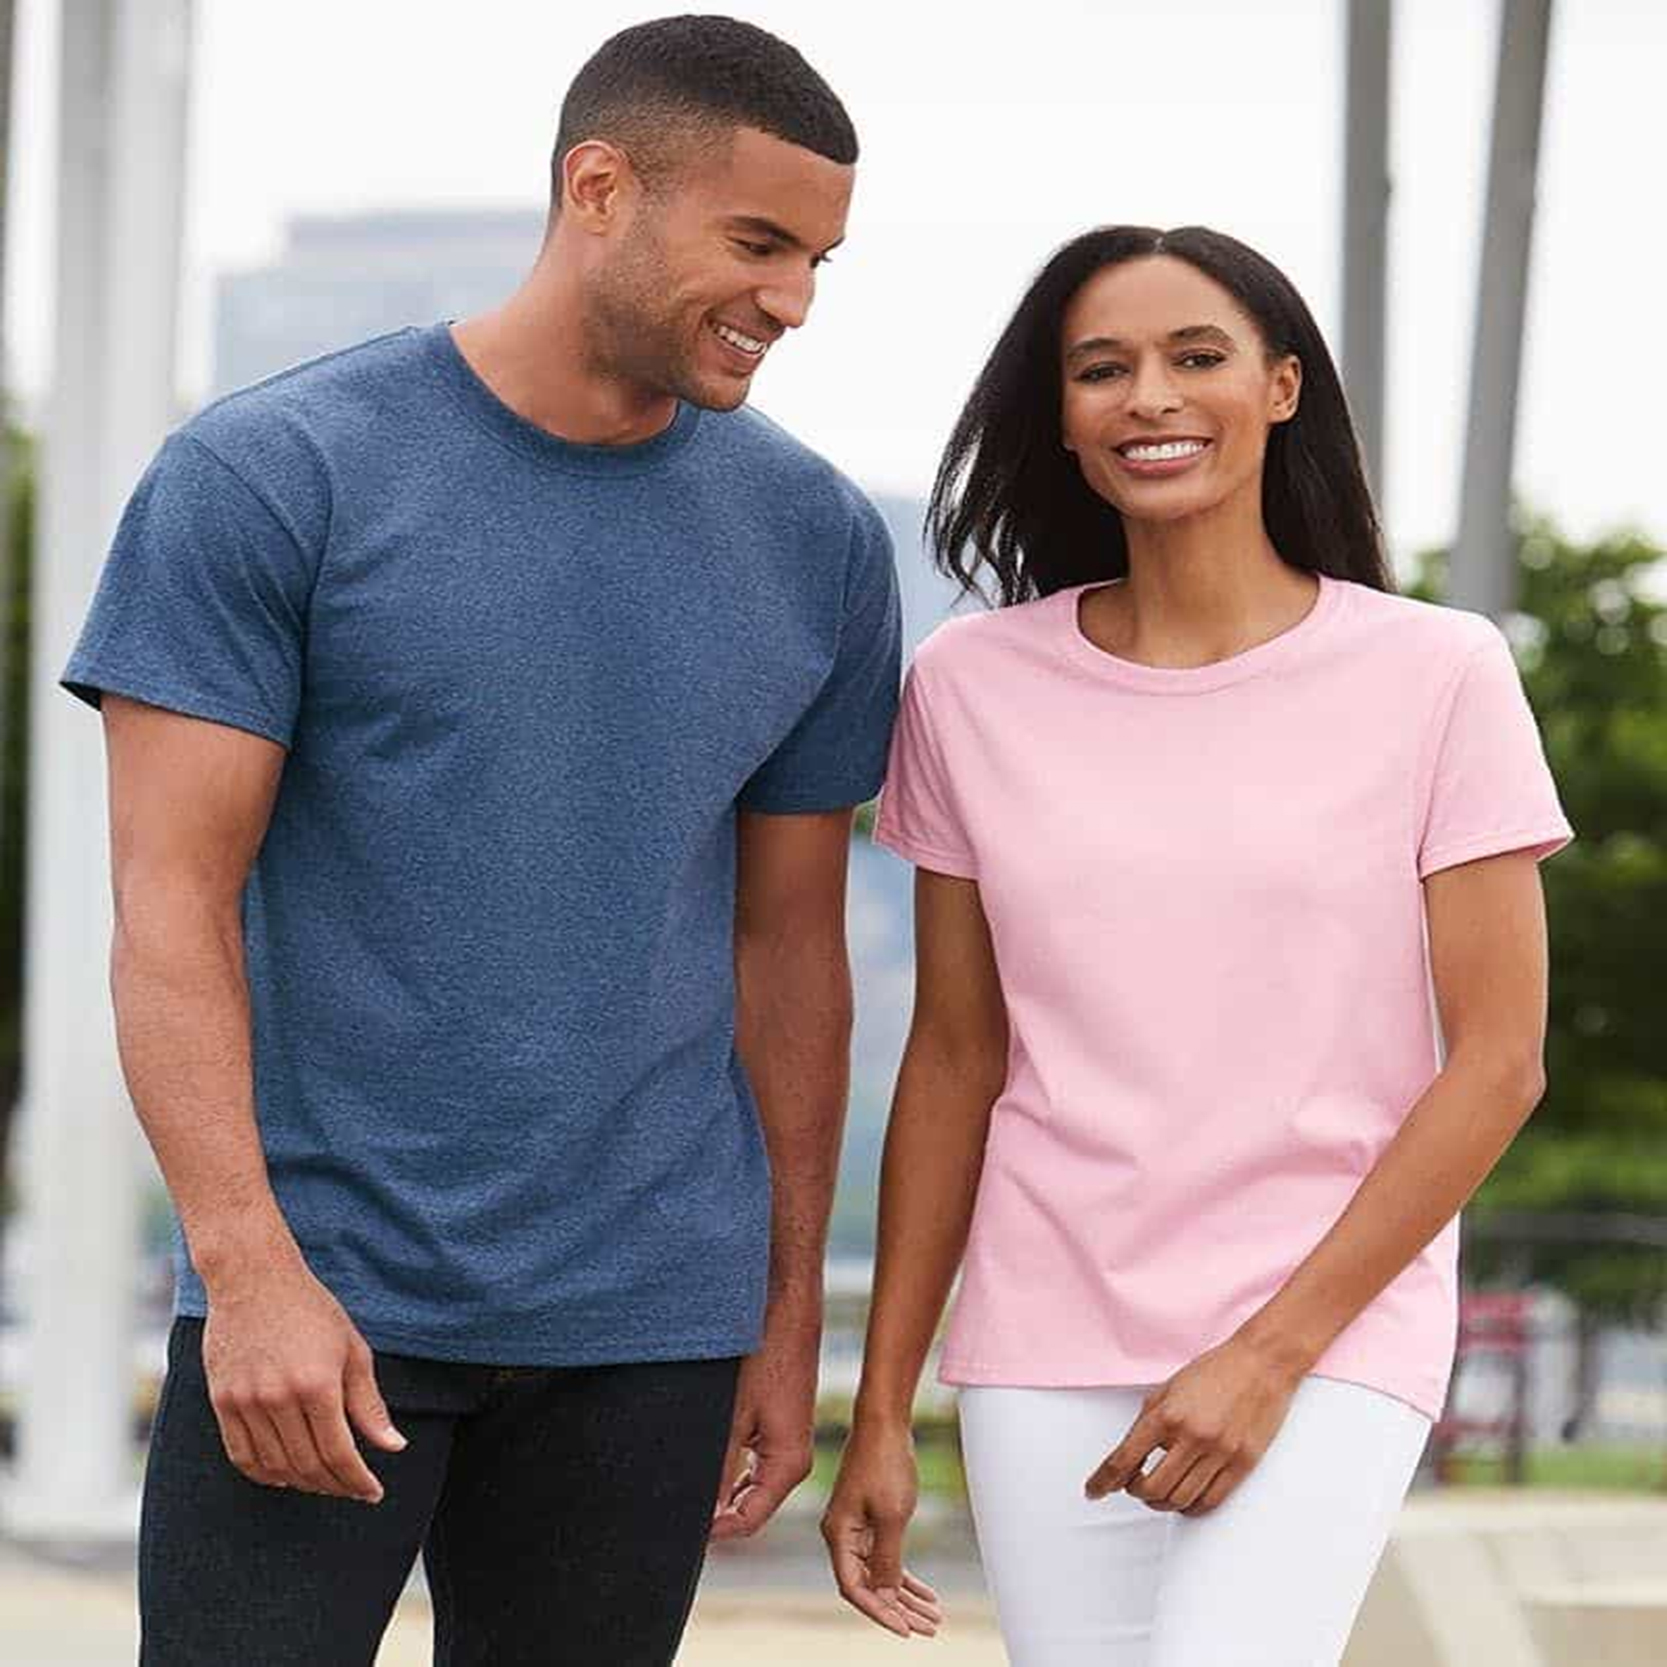 Where to Find Good Deals on T- Shirts